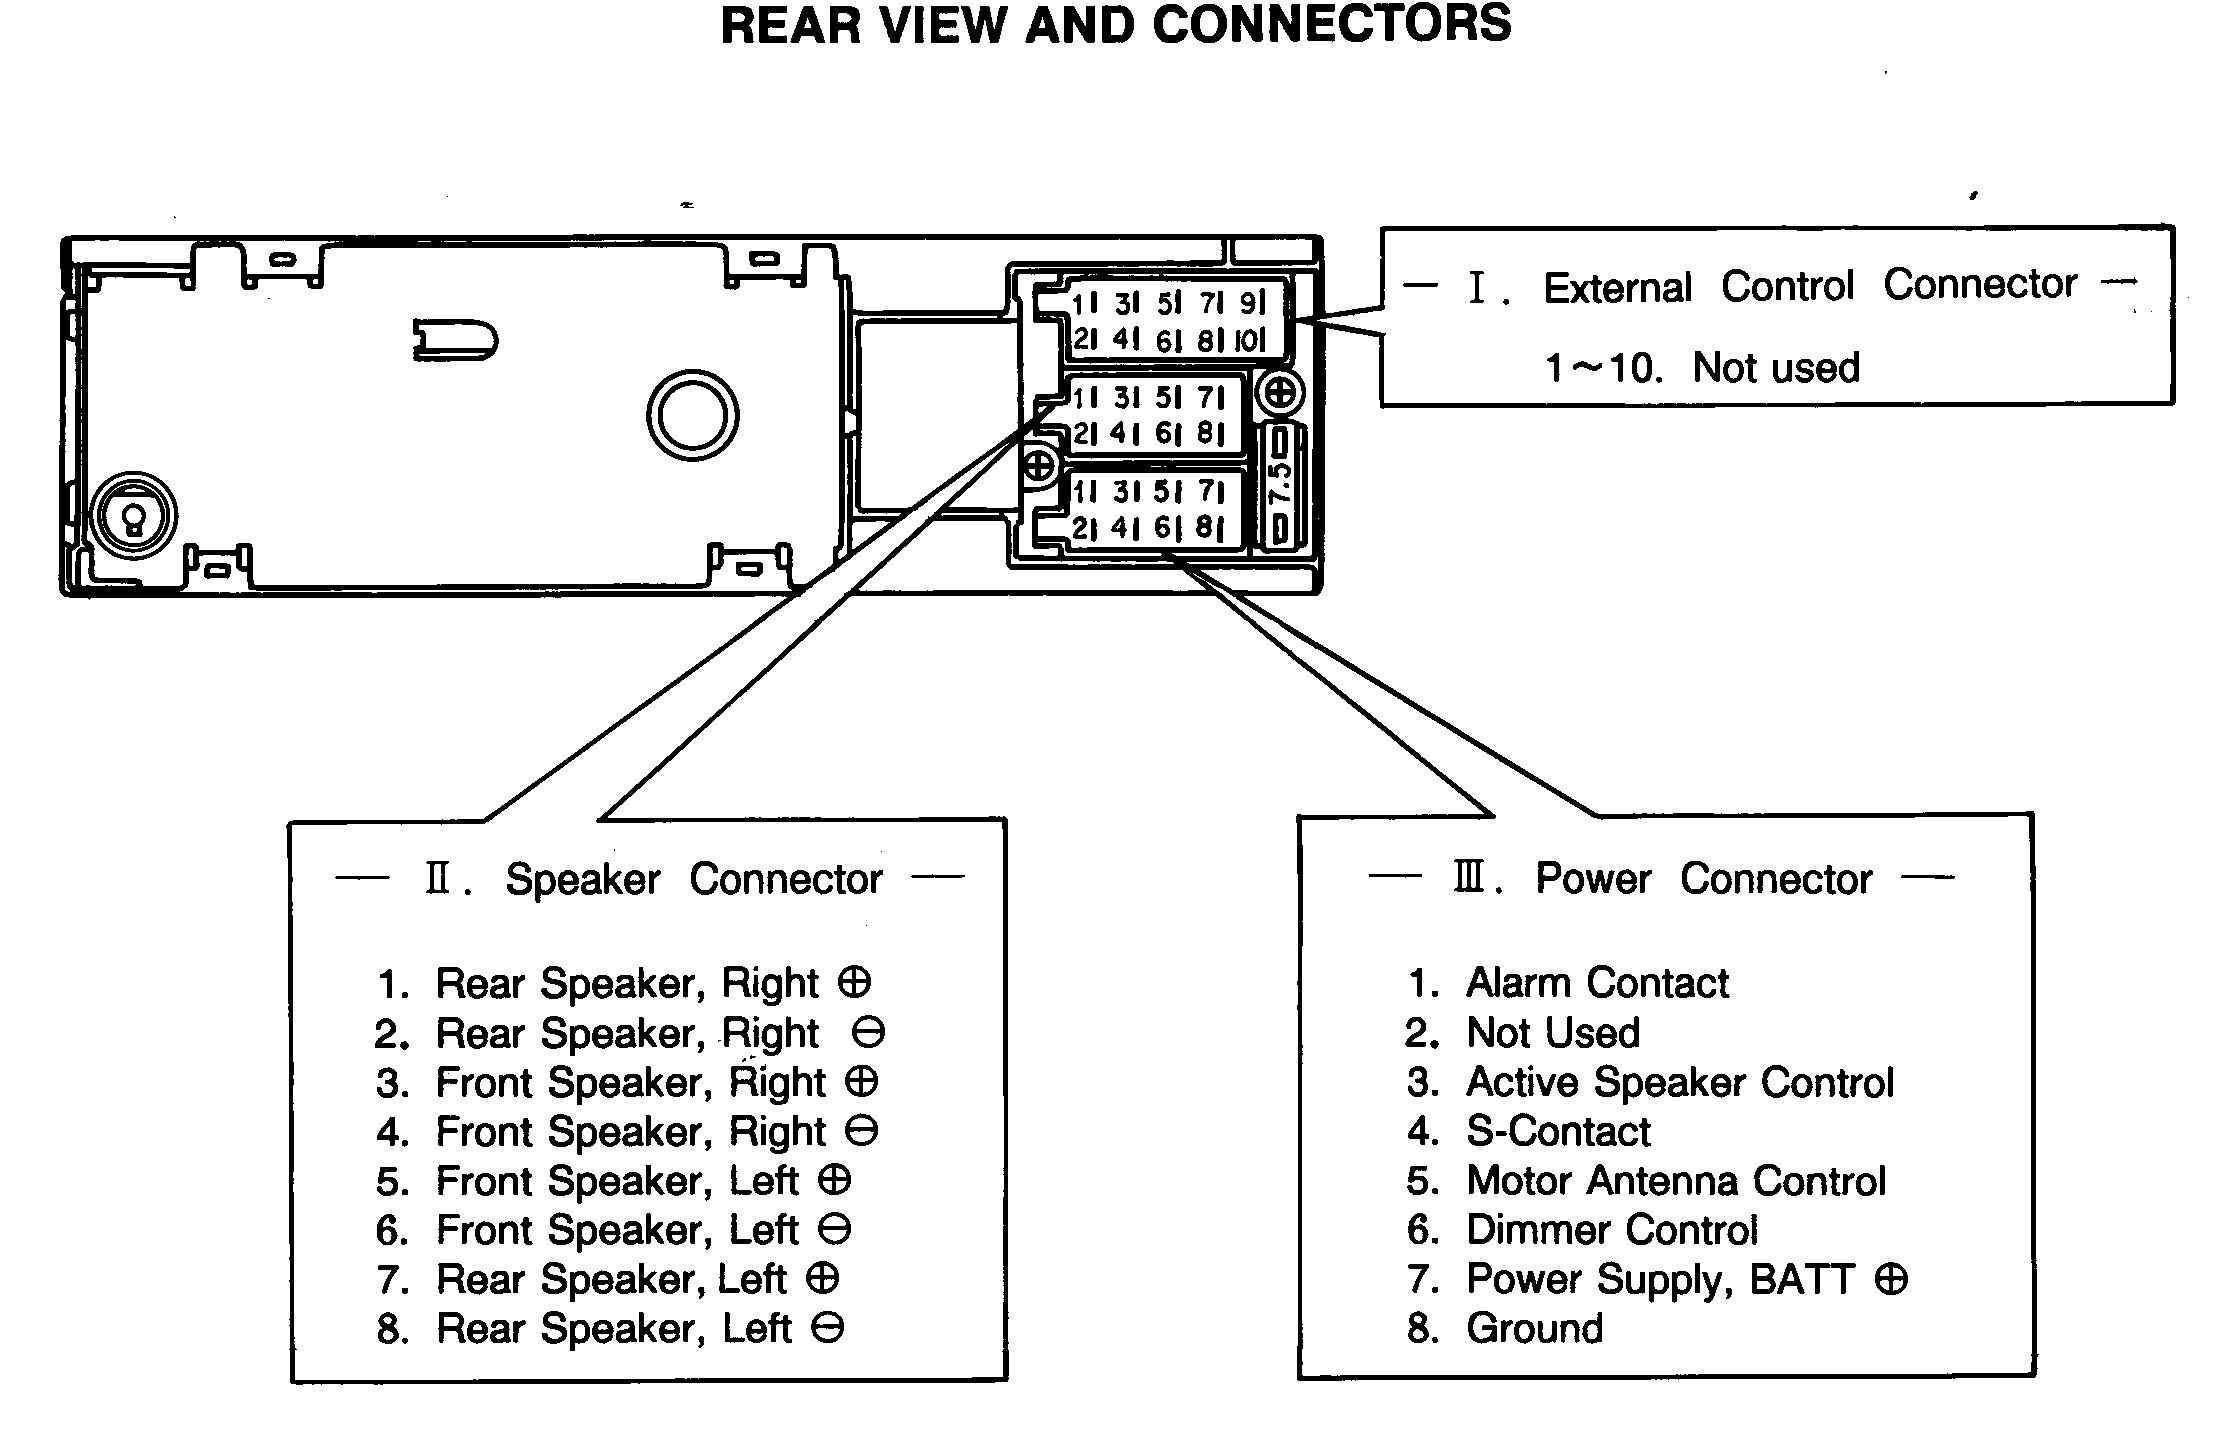 Car Stereo Amp Installation Diagram 23 Best Sample Automotive Wiring Diagram Design with Of Car Stereo Amp Installation Diagram